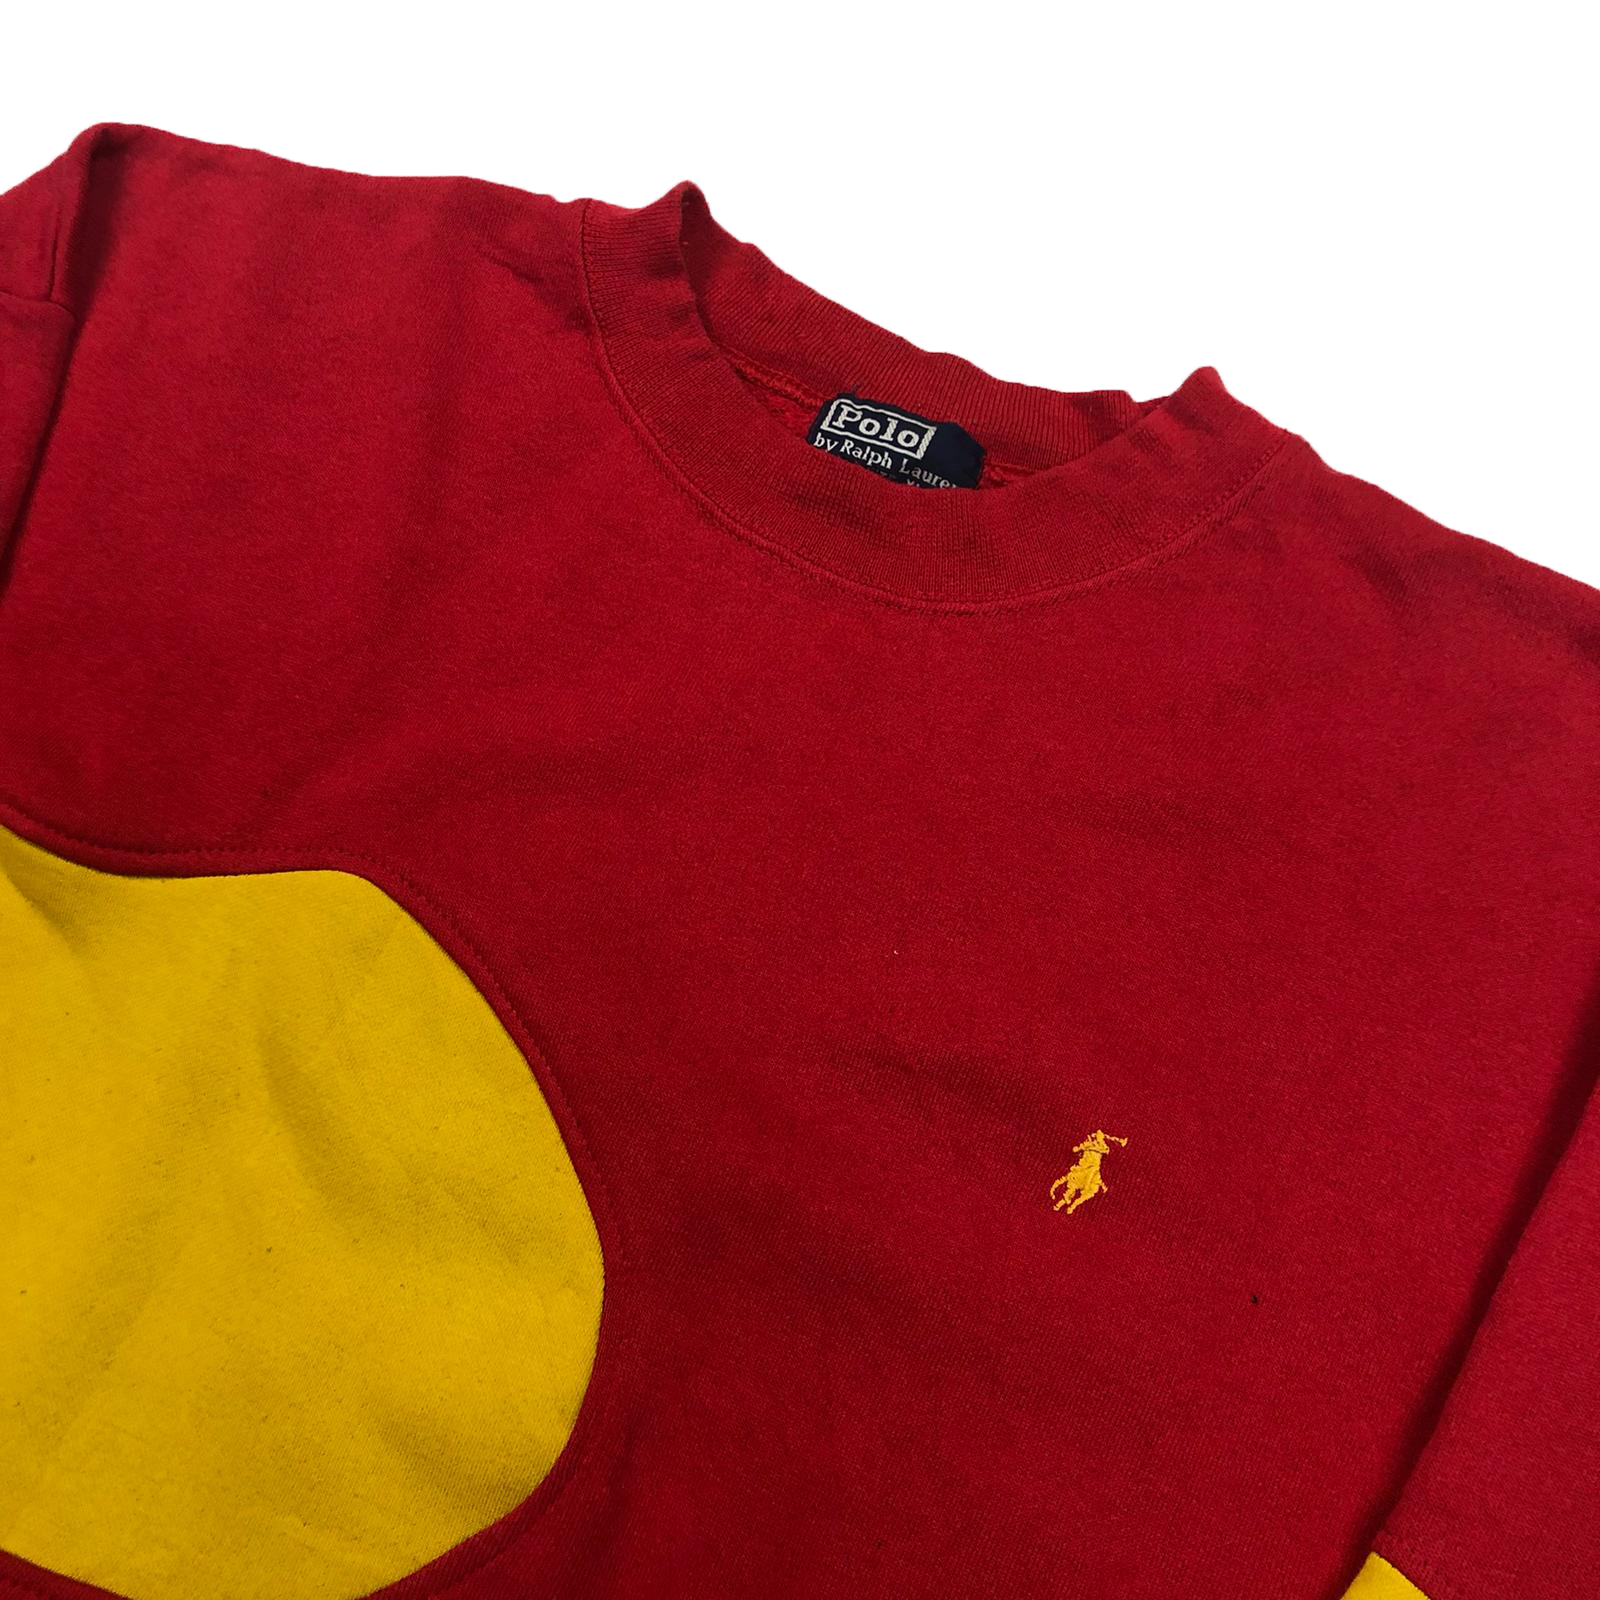 Reworked Ralph Lauren sweatshirt